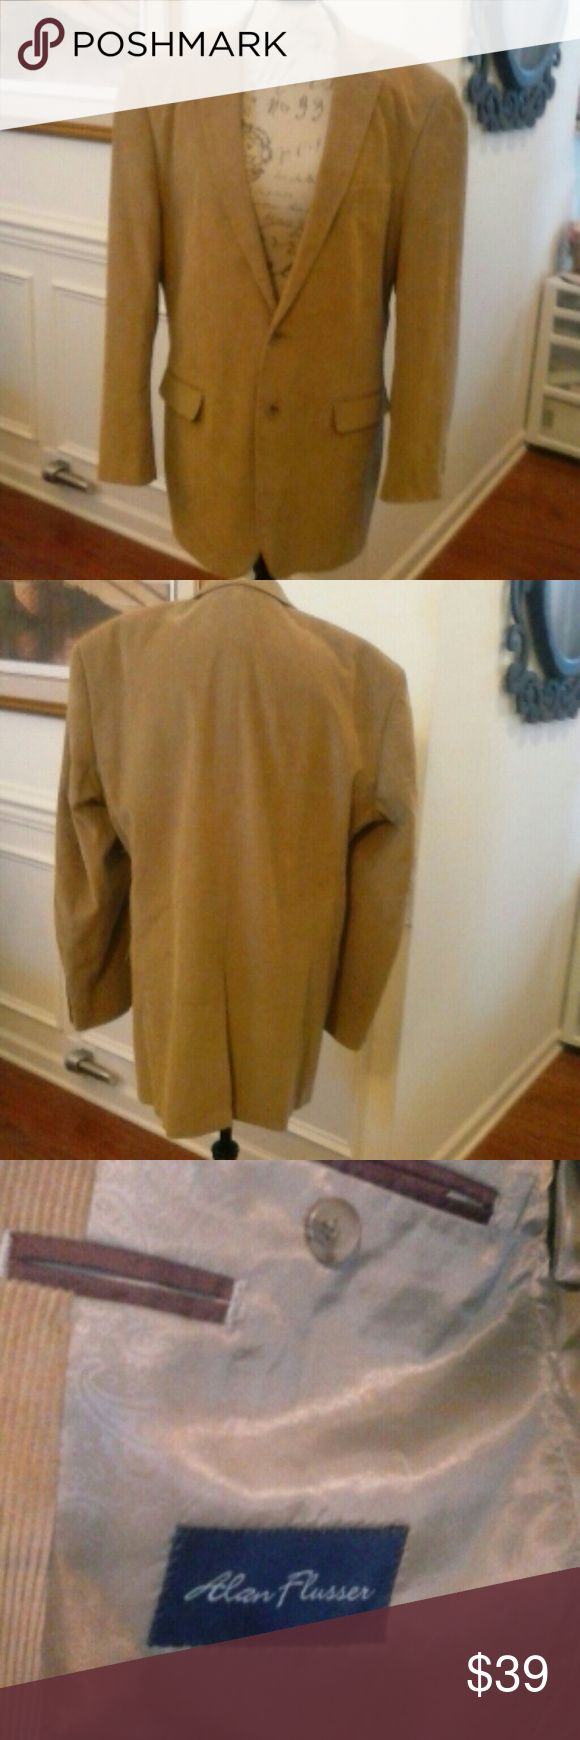 Just In! LN Alan Flusser Corduroy Blazer  46 L Like New fully lined corduroy blazer in mint condition, looks new.  Color: Camel, Pocket on each side in front which are accents only. Functional pockets on inside! Alan Flusser Suits & Blazers Sport Coats & Blazers